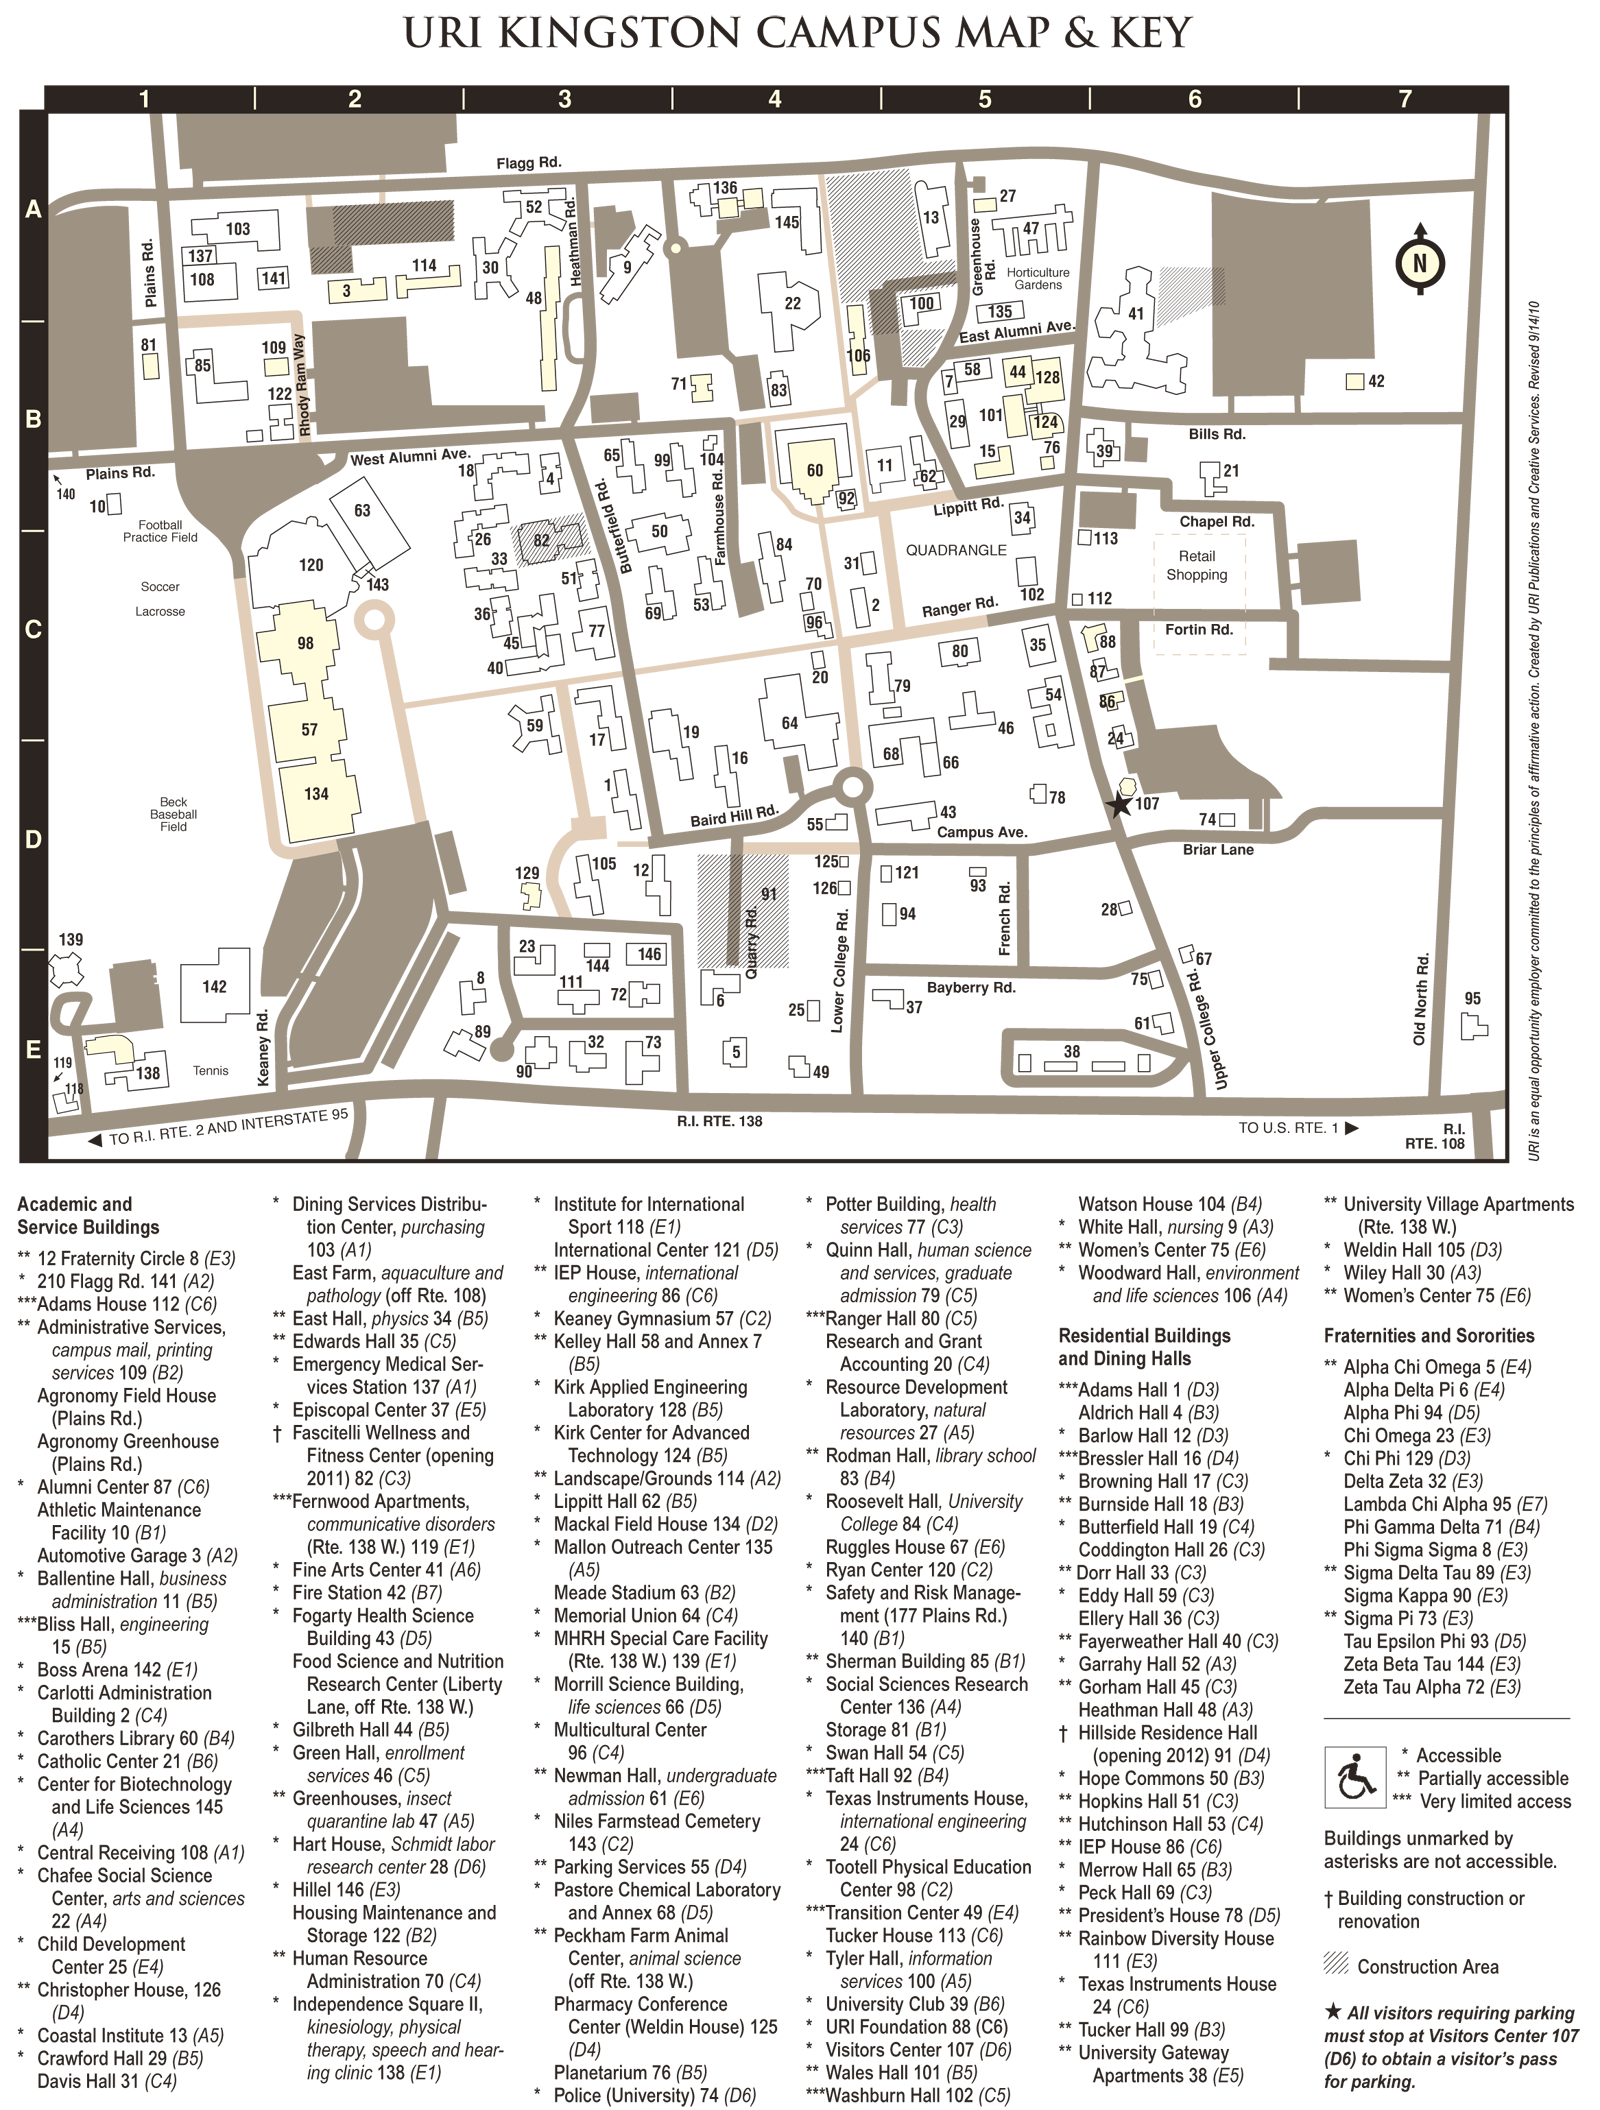 Uri Kingston Campus Map Mapsof Net